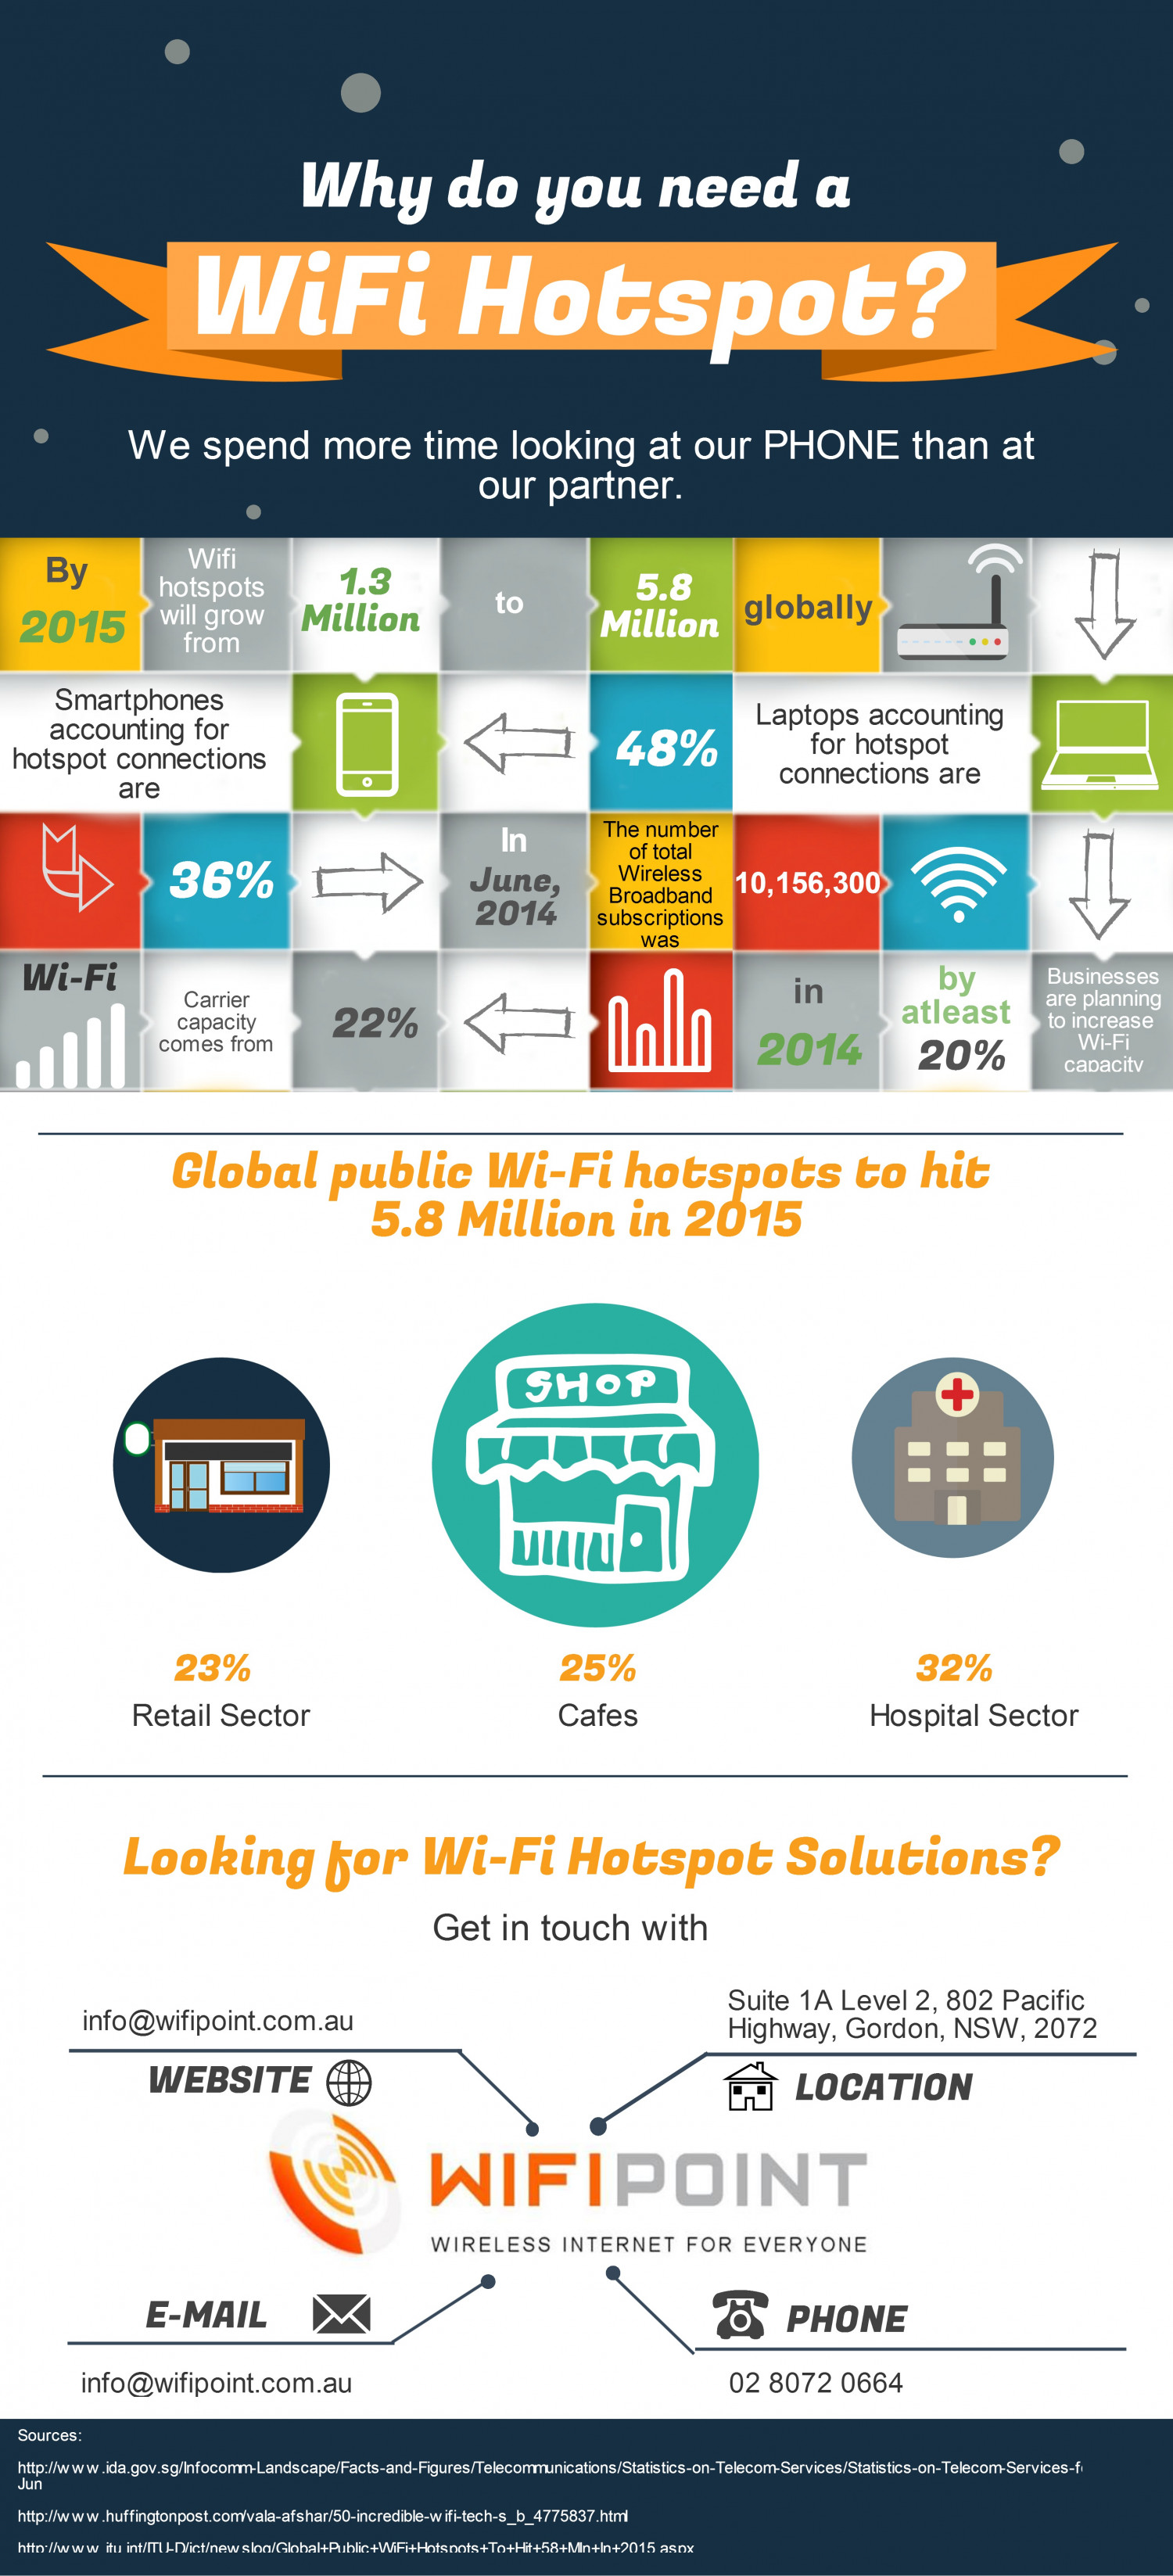 Why do you need a Wifi Hotspot Infographic